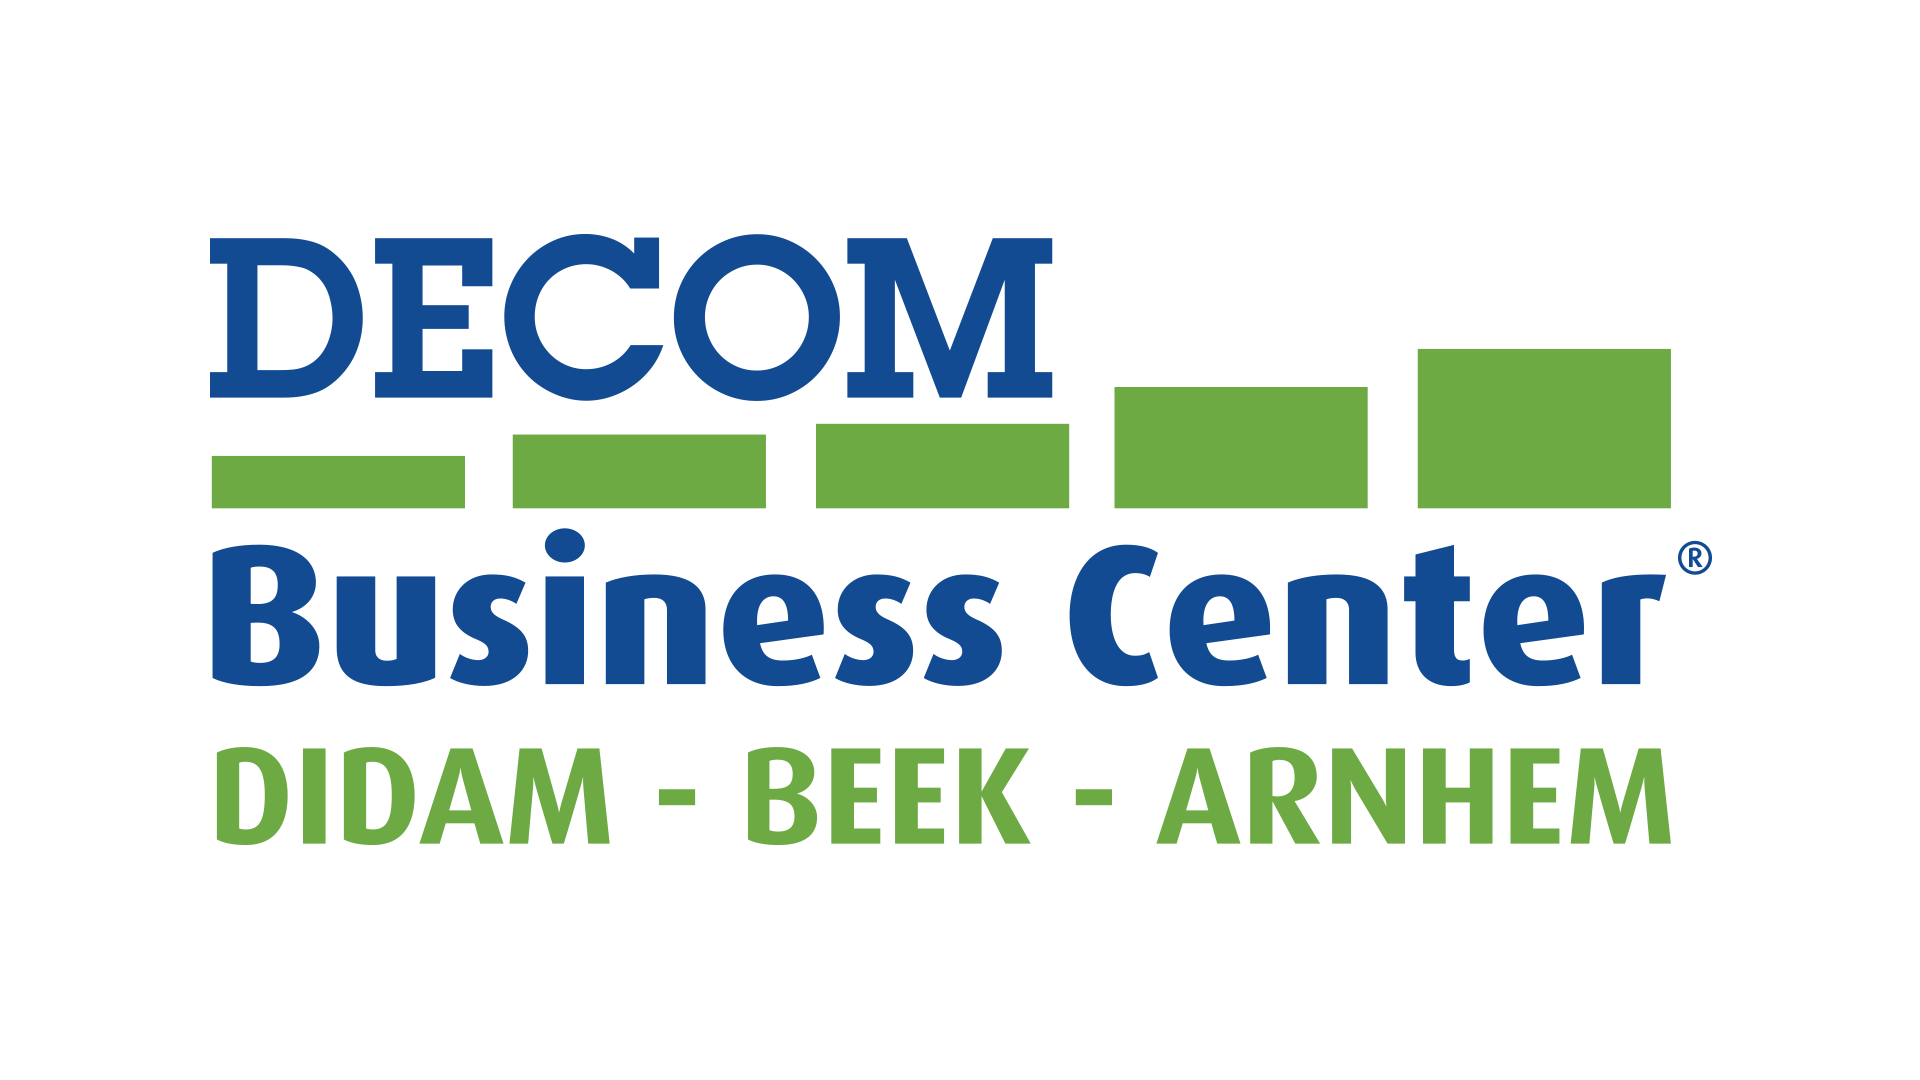 Decom Business Center